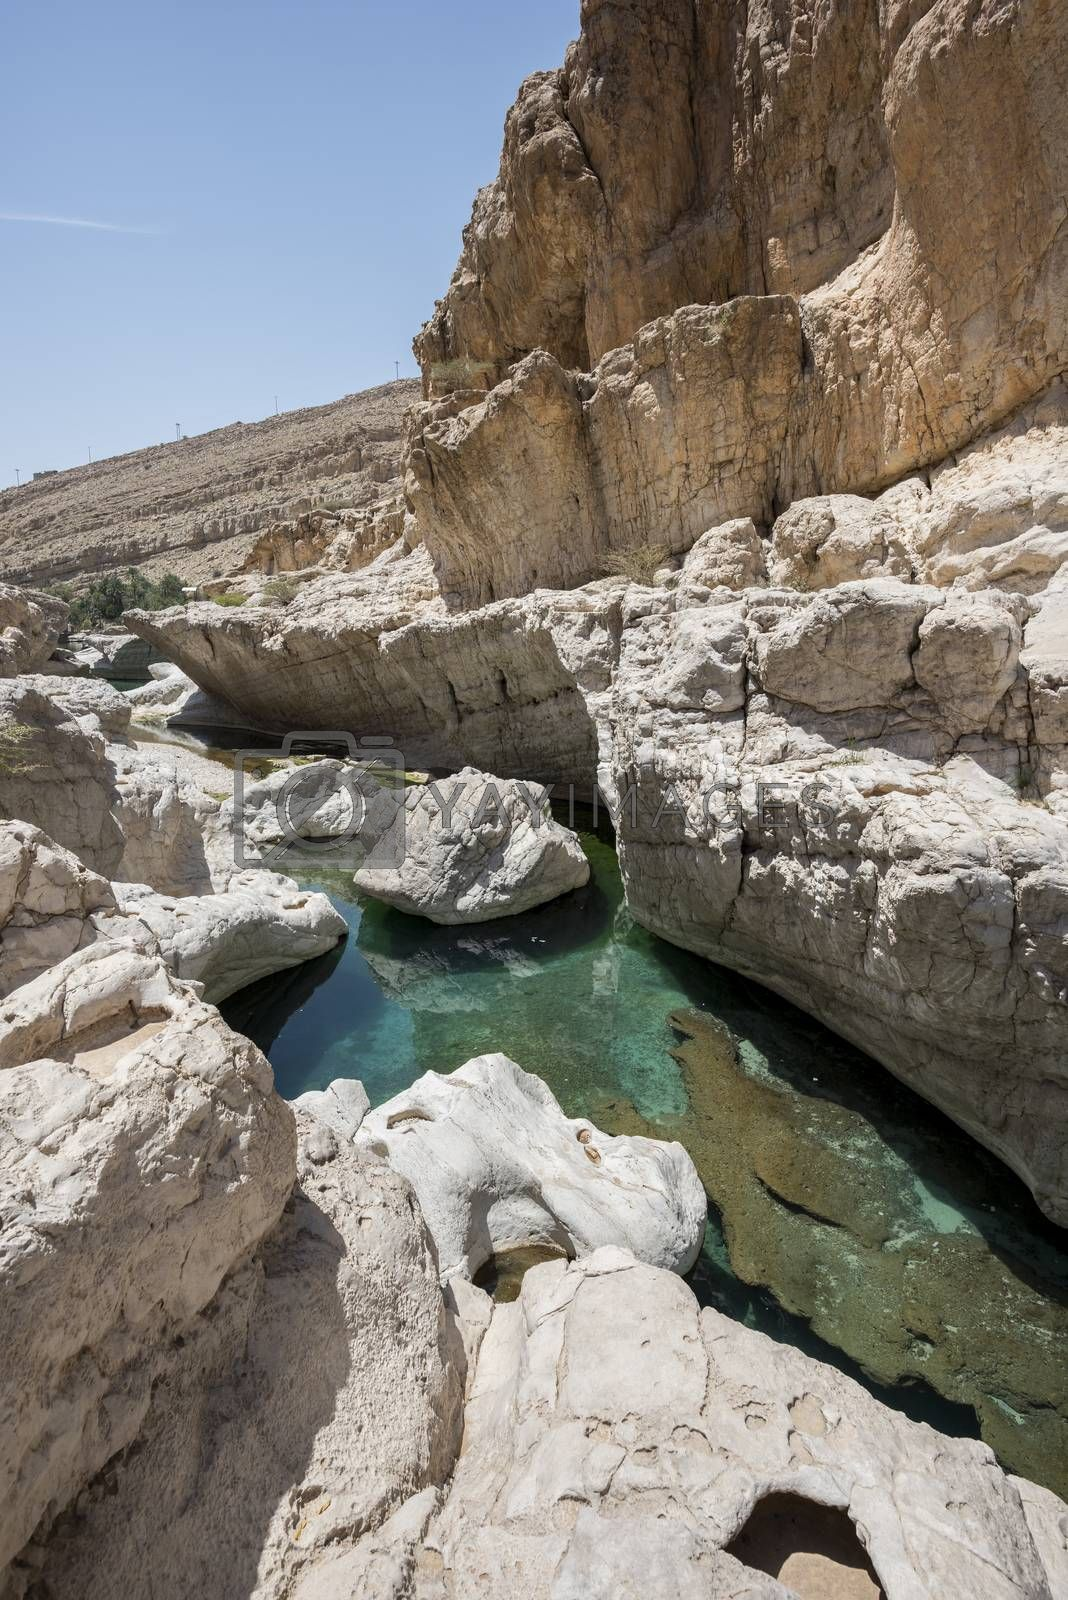 River (with turquoise water) and pool in the canyon of Wadi Bani Khalid, Oman